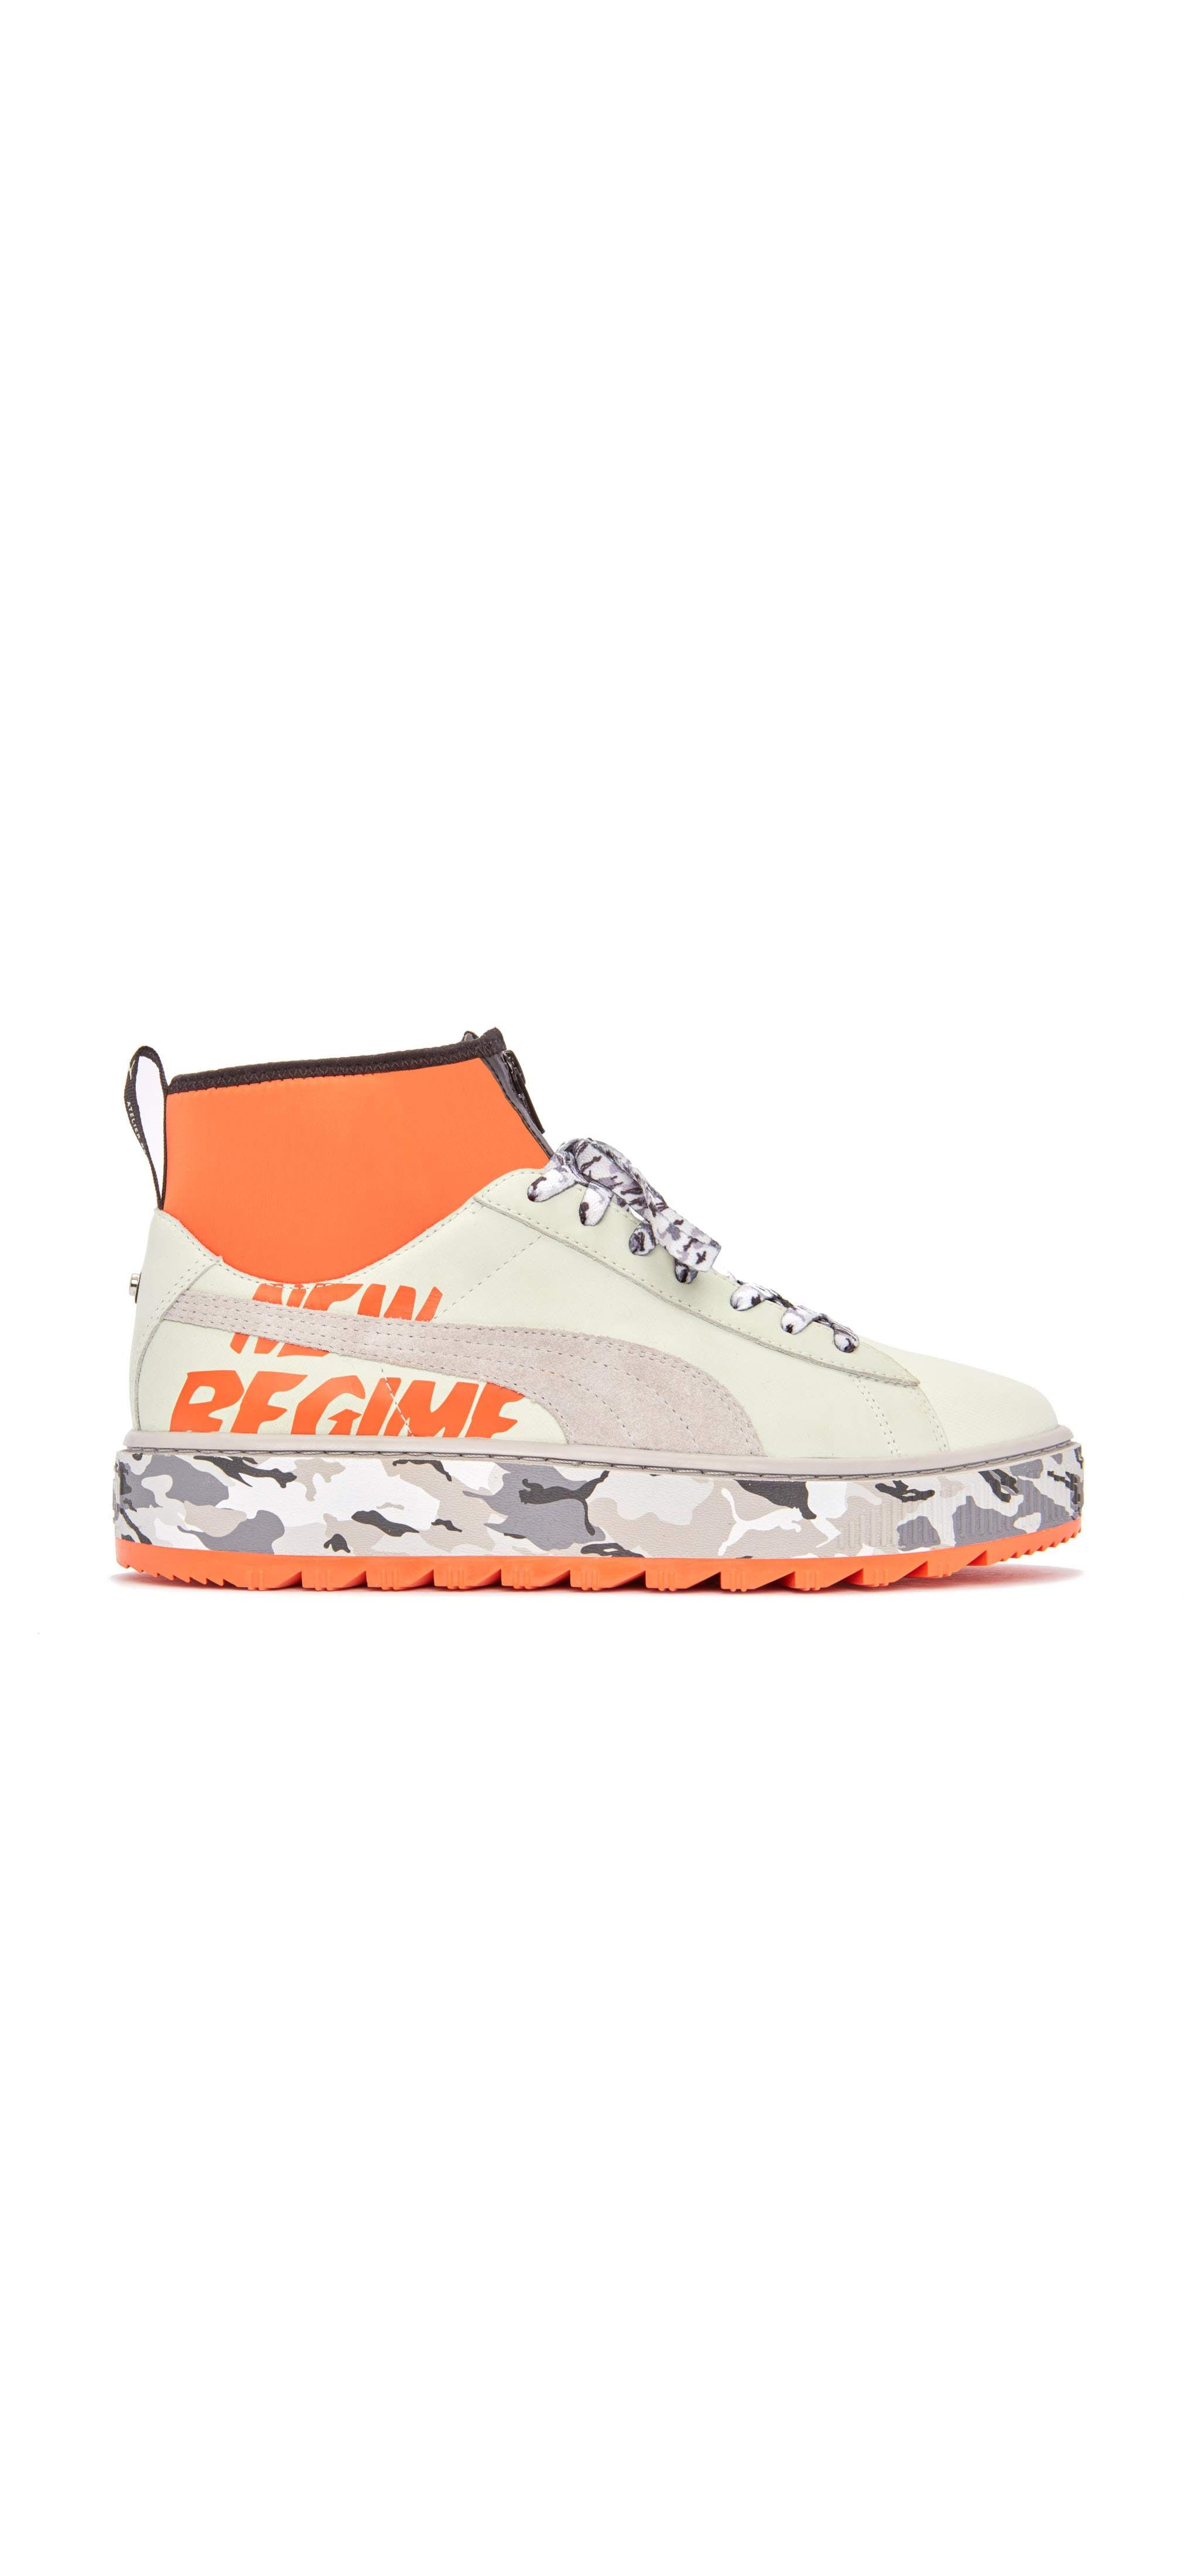 7b5f154ba7a Ren Boot ANR   The PUMA x ANR interpretation of the Ren Boot offers a heavy